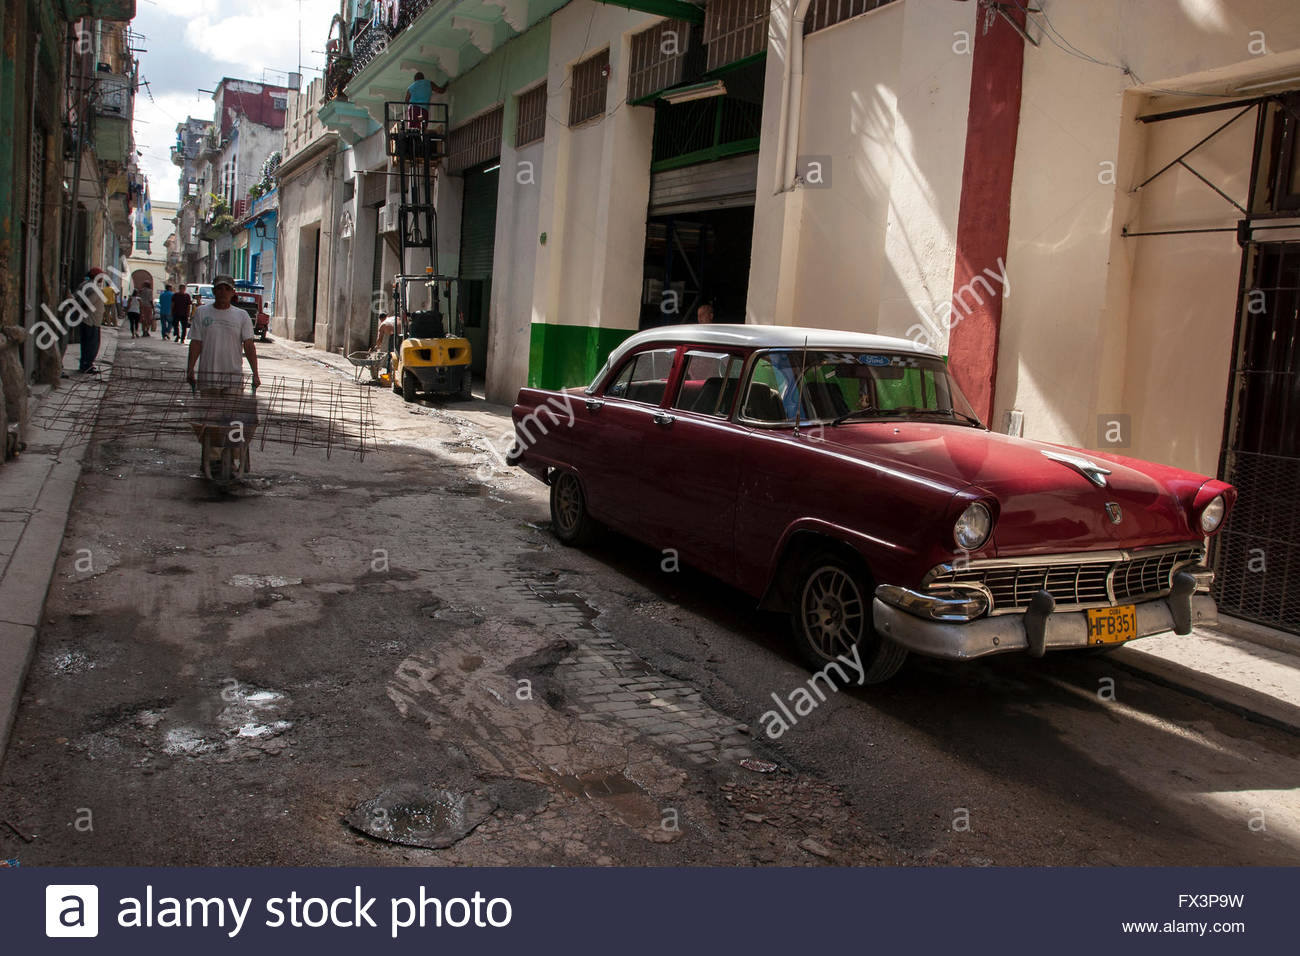 Vintage Ford Car on street in Havana, man with construction ...